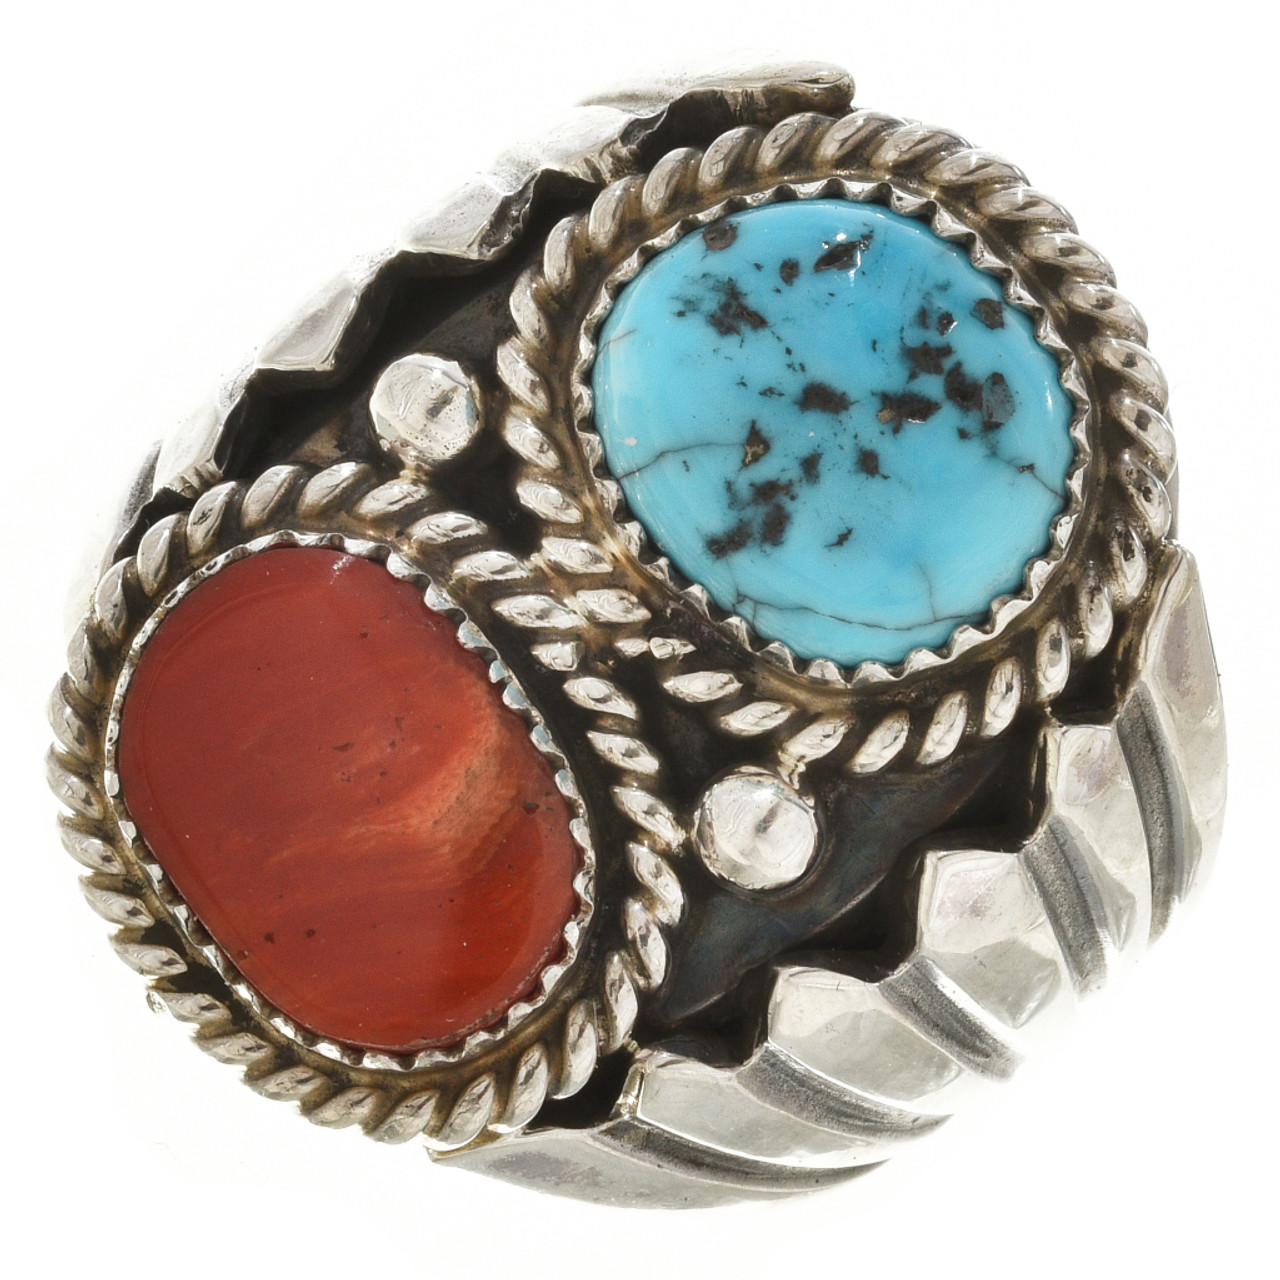 jewellery indie harper turquoise bohemian wedding rings navajo and gypsy jewels ring flower products festival